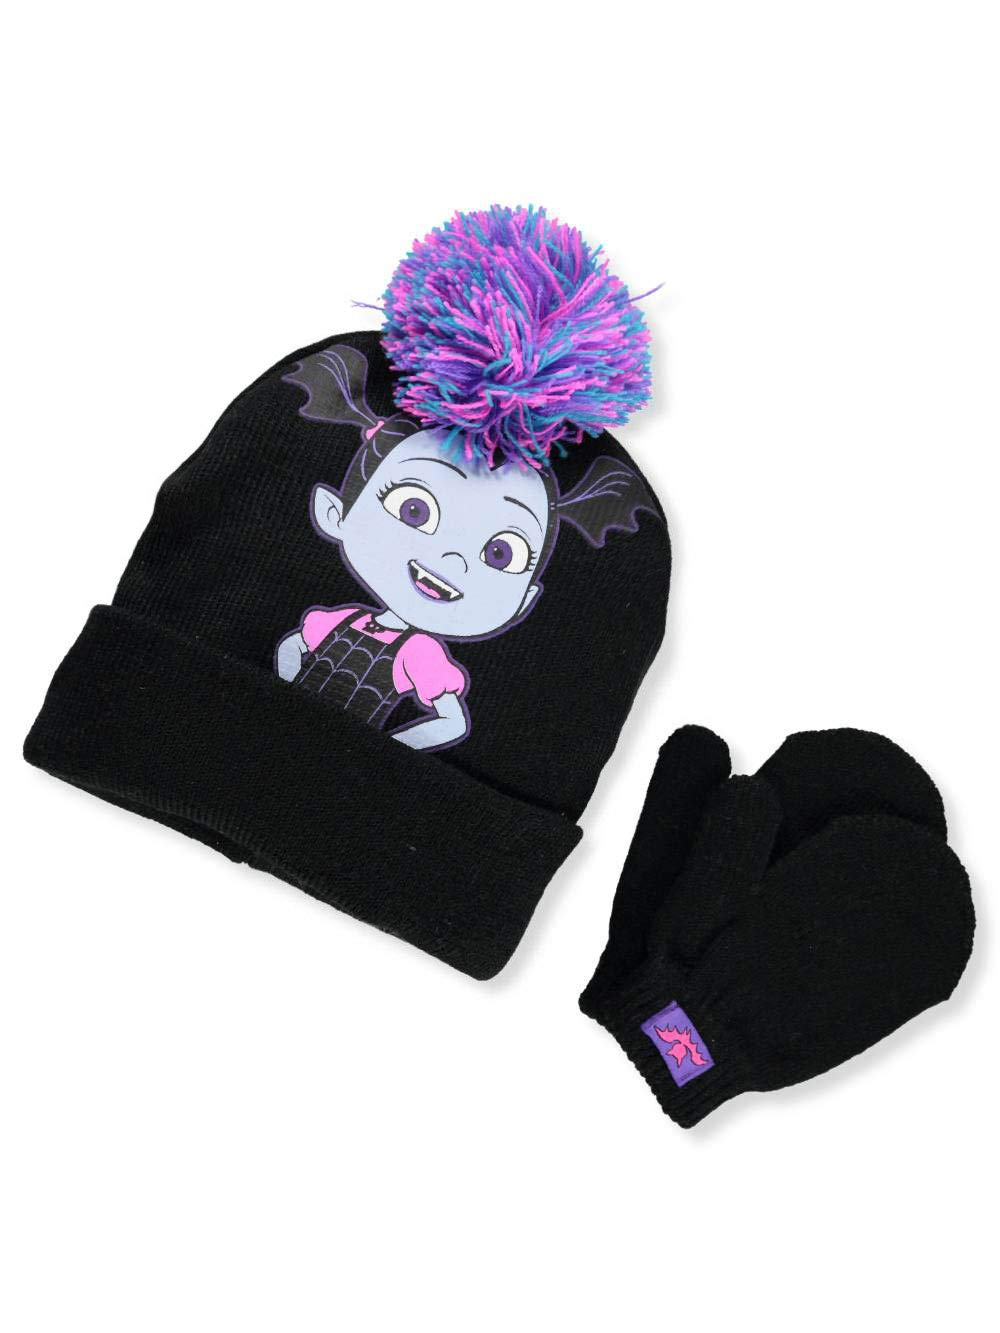 Disney Vampirina Big Girls' Beanie & Mittens Set - black/purple, one size